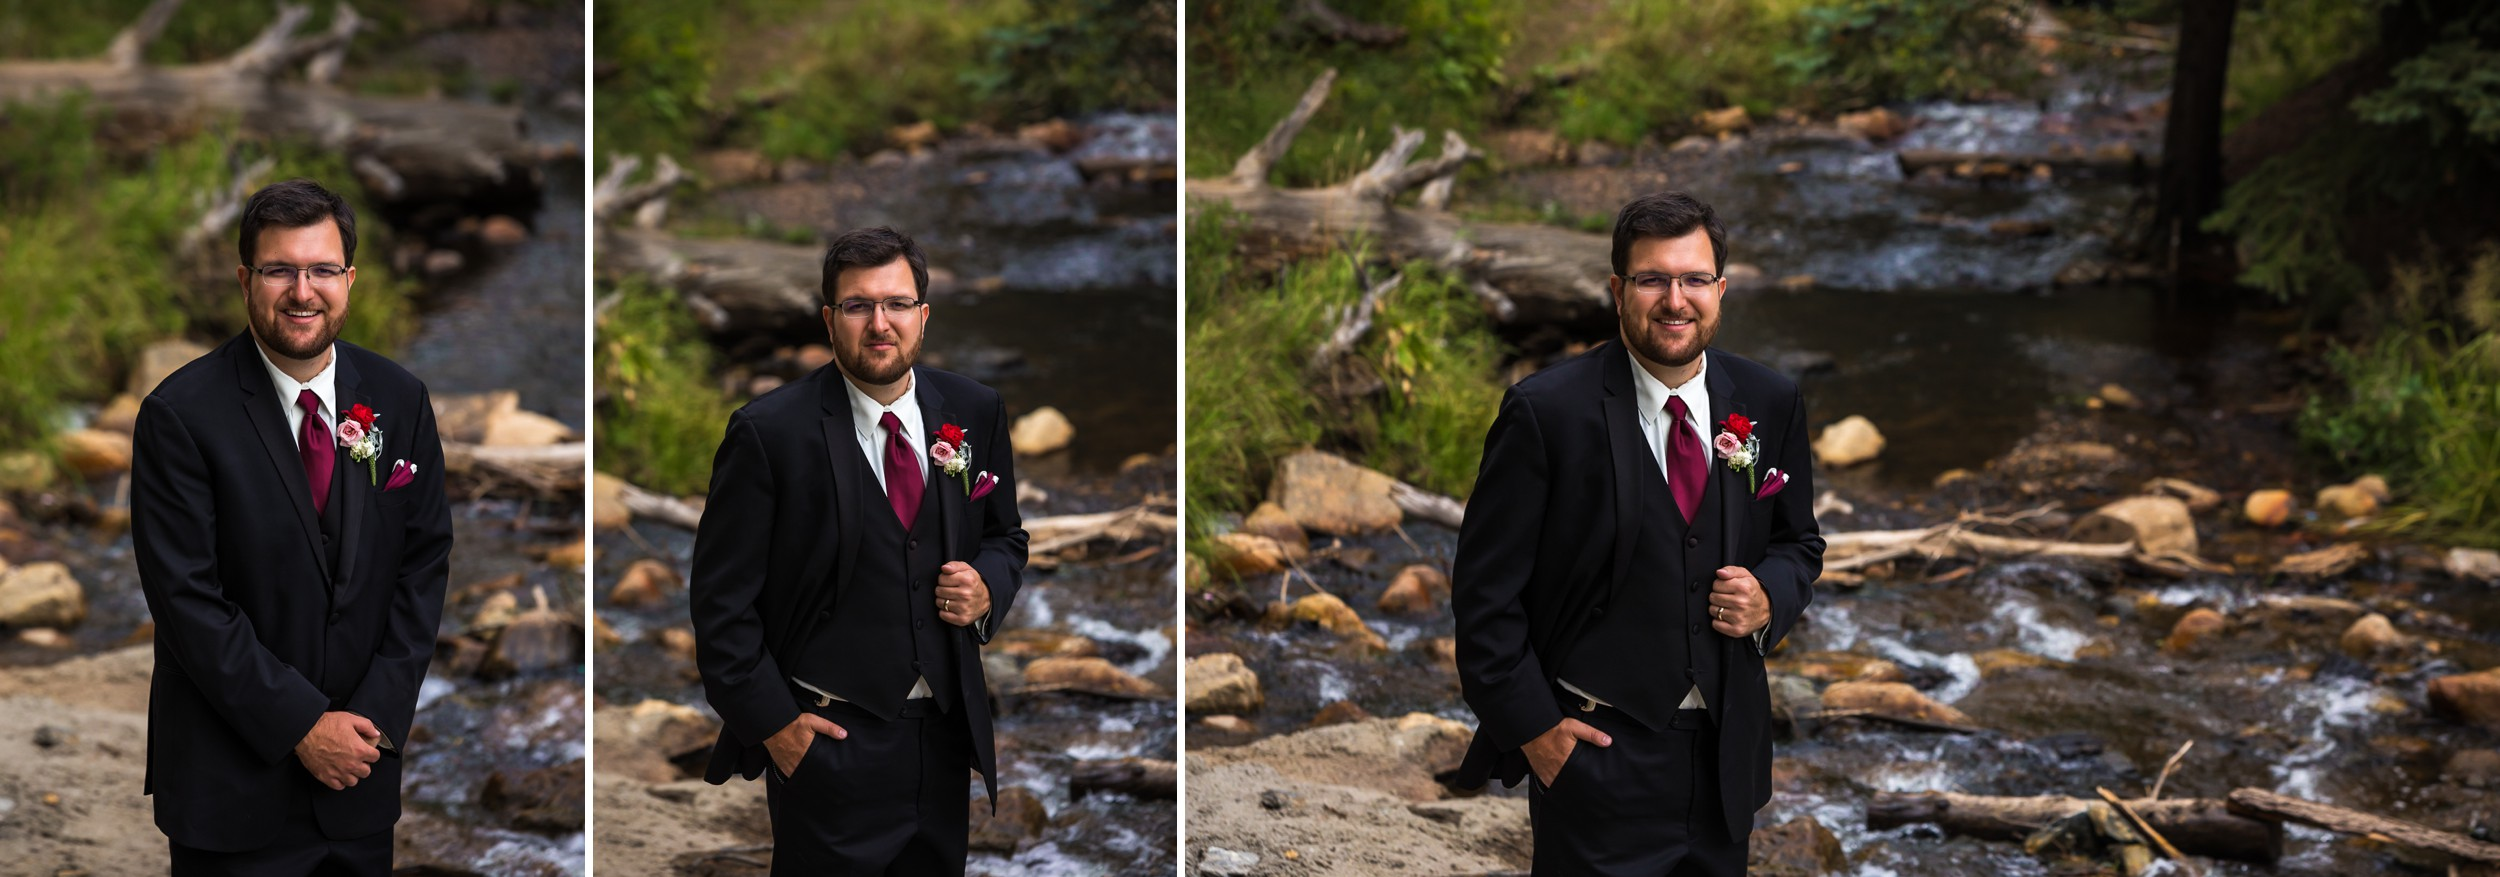 YMCA_of_the_Rockies_Estes_Park_Elopement_Emanuel_Kristopher_Lindsay_Photography 8.jpg